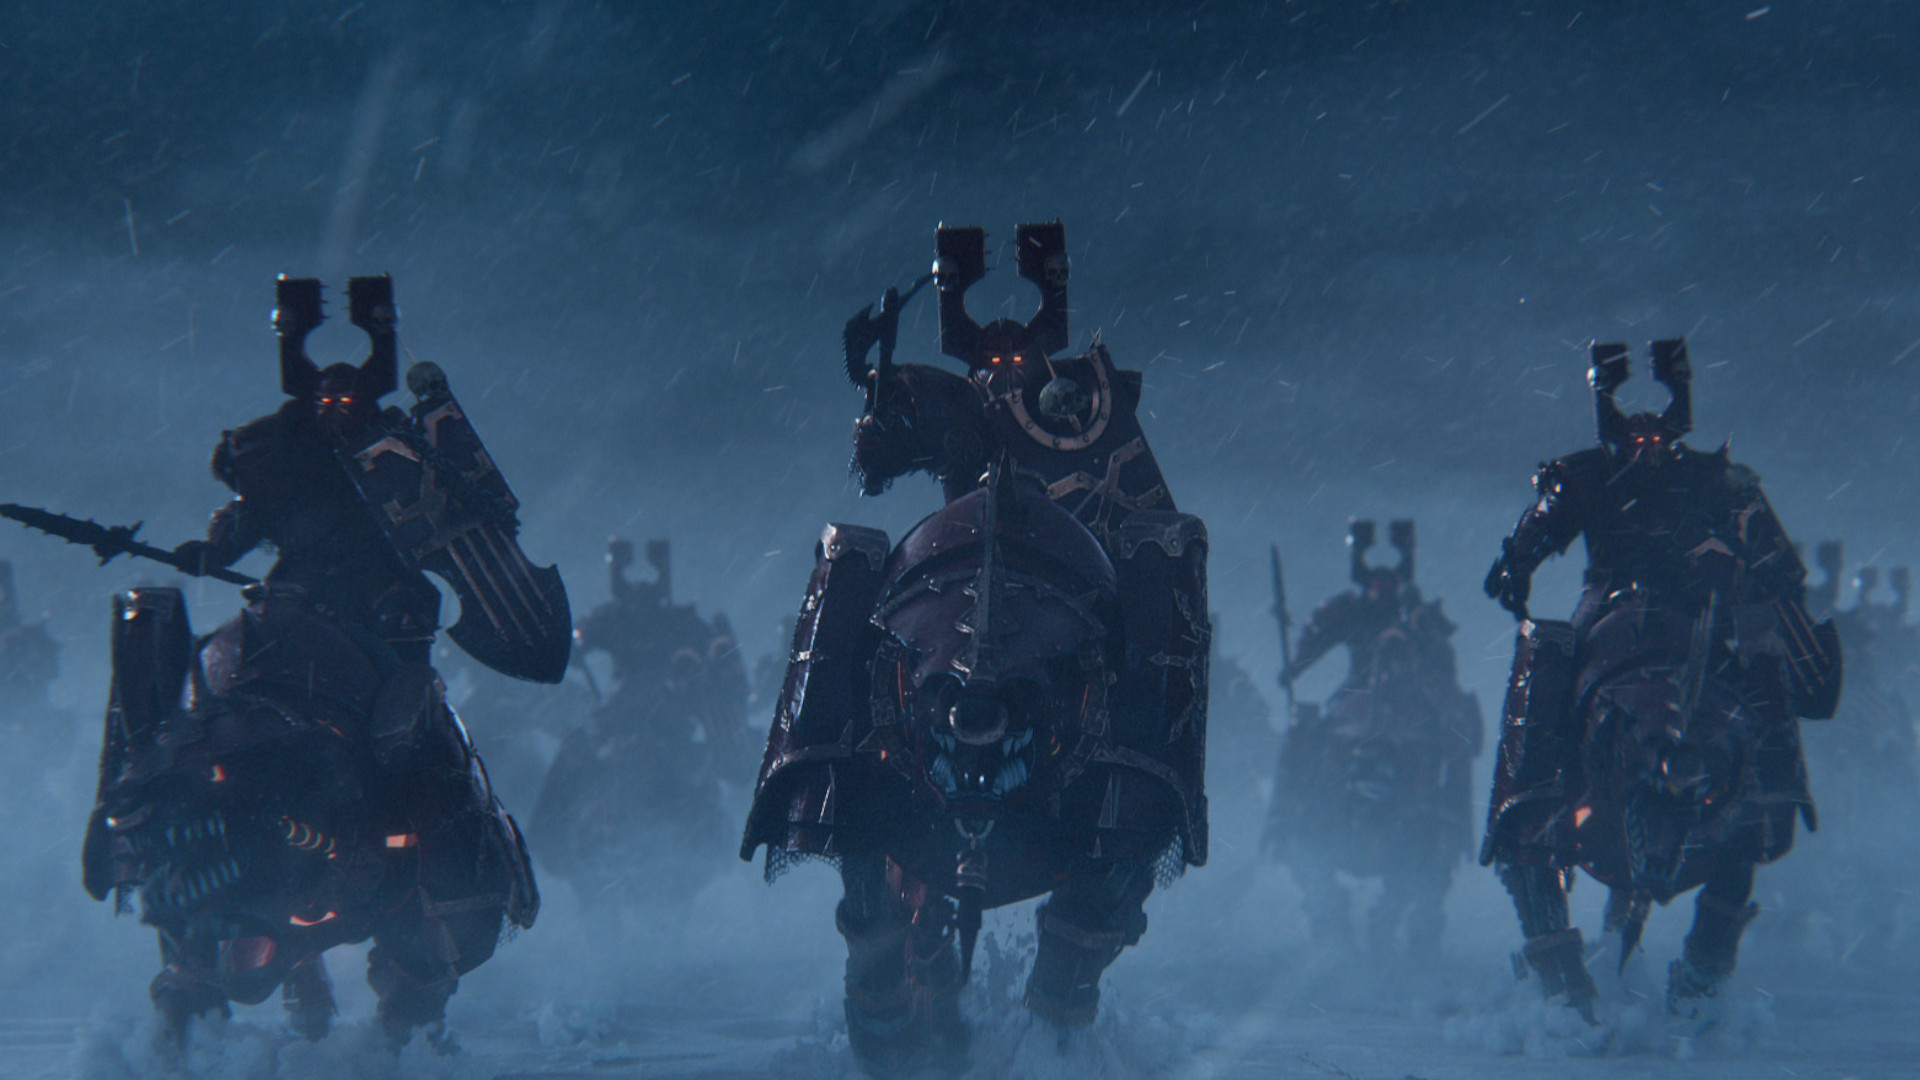 Total War: Warhammer 3 is already the best-selling game on Steam